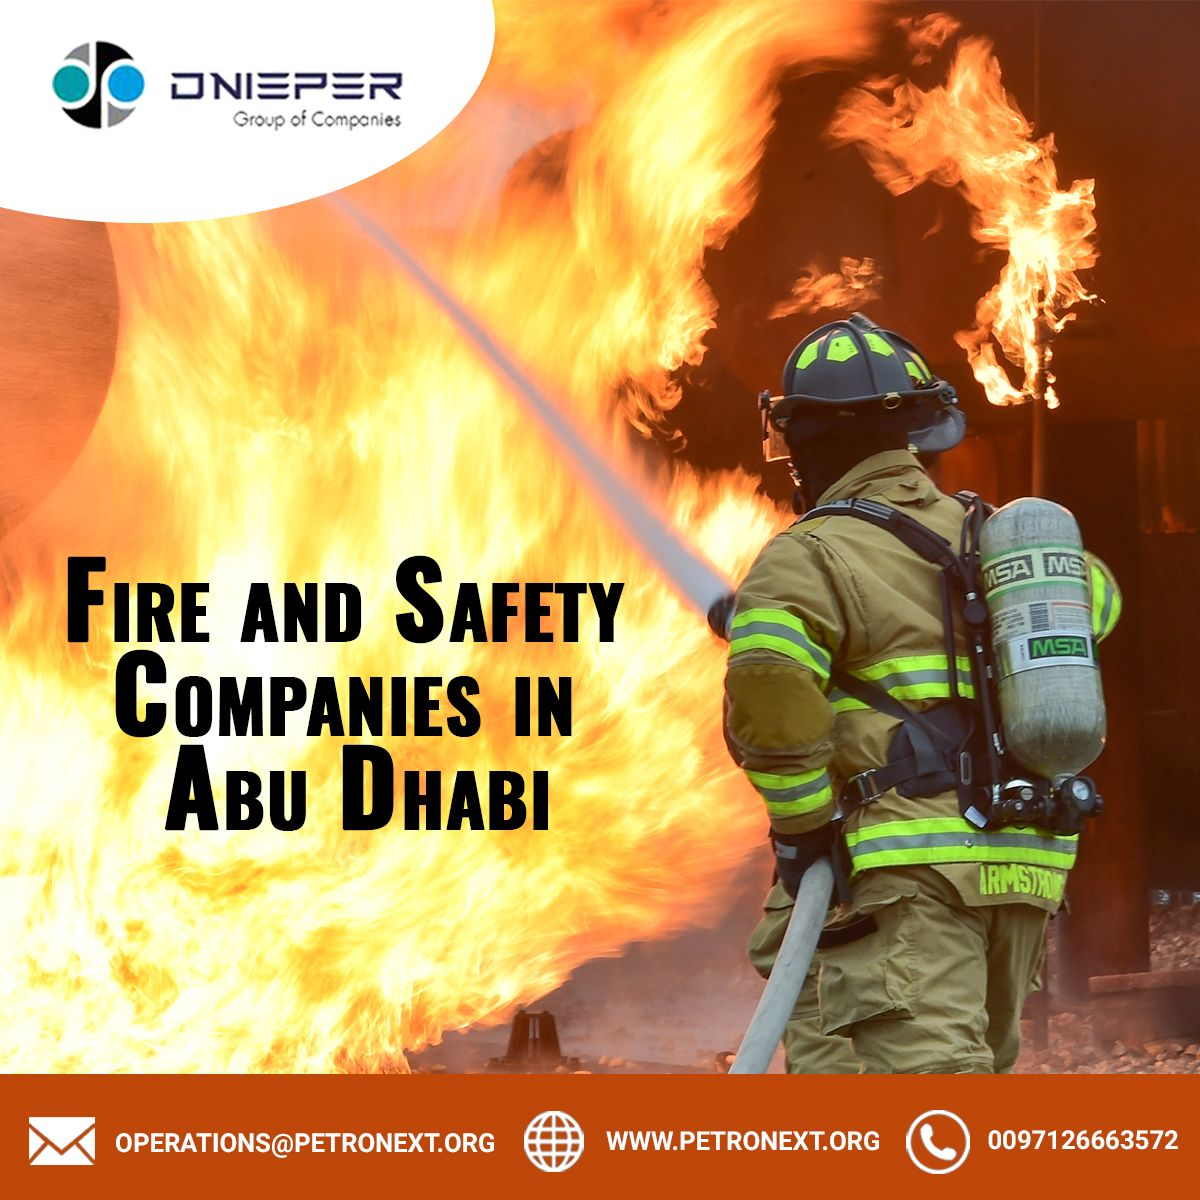 Fire and Safety Companies in Abu Dhabi Petronext